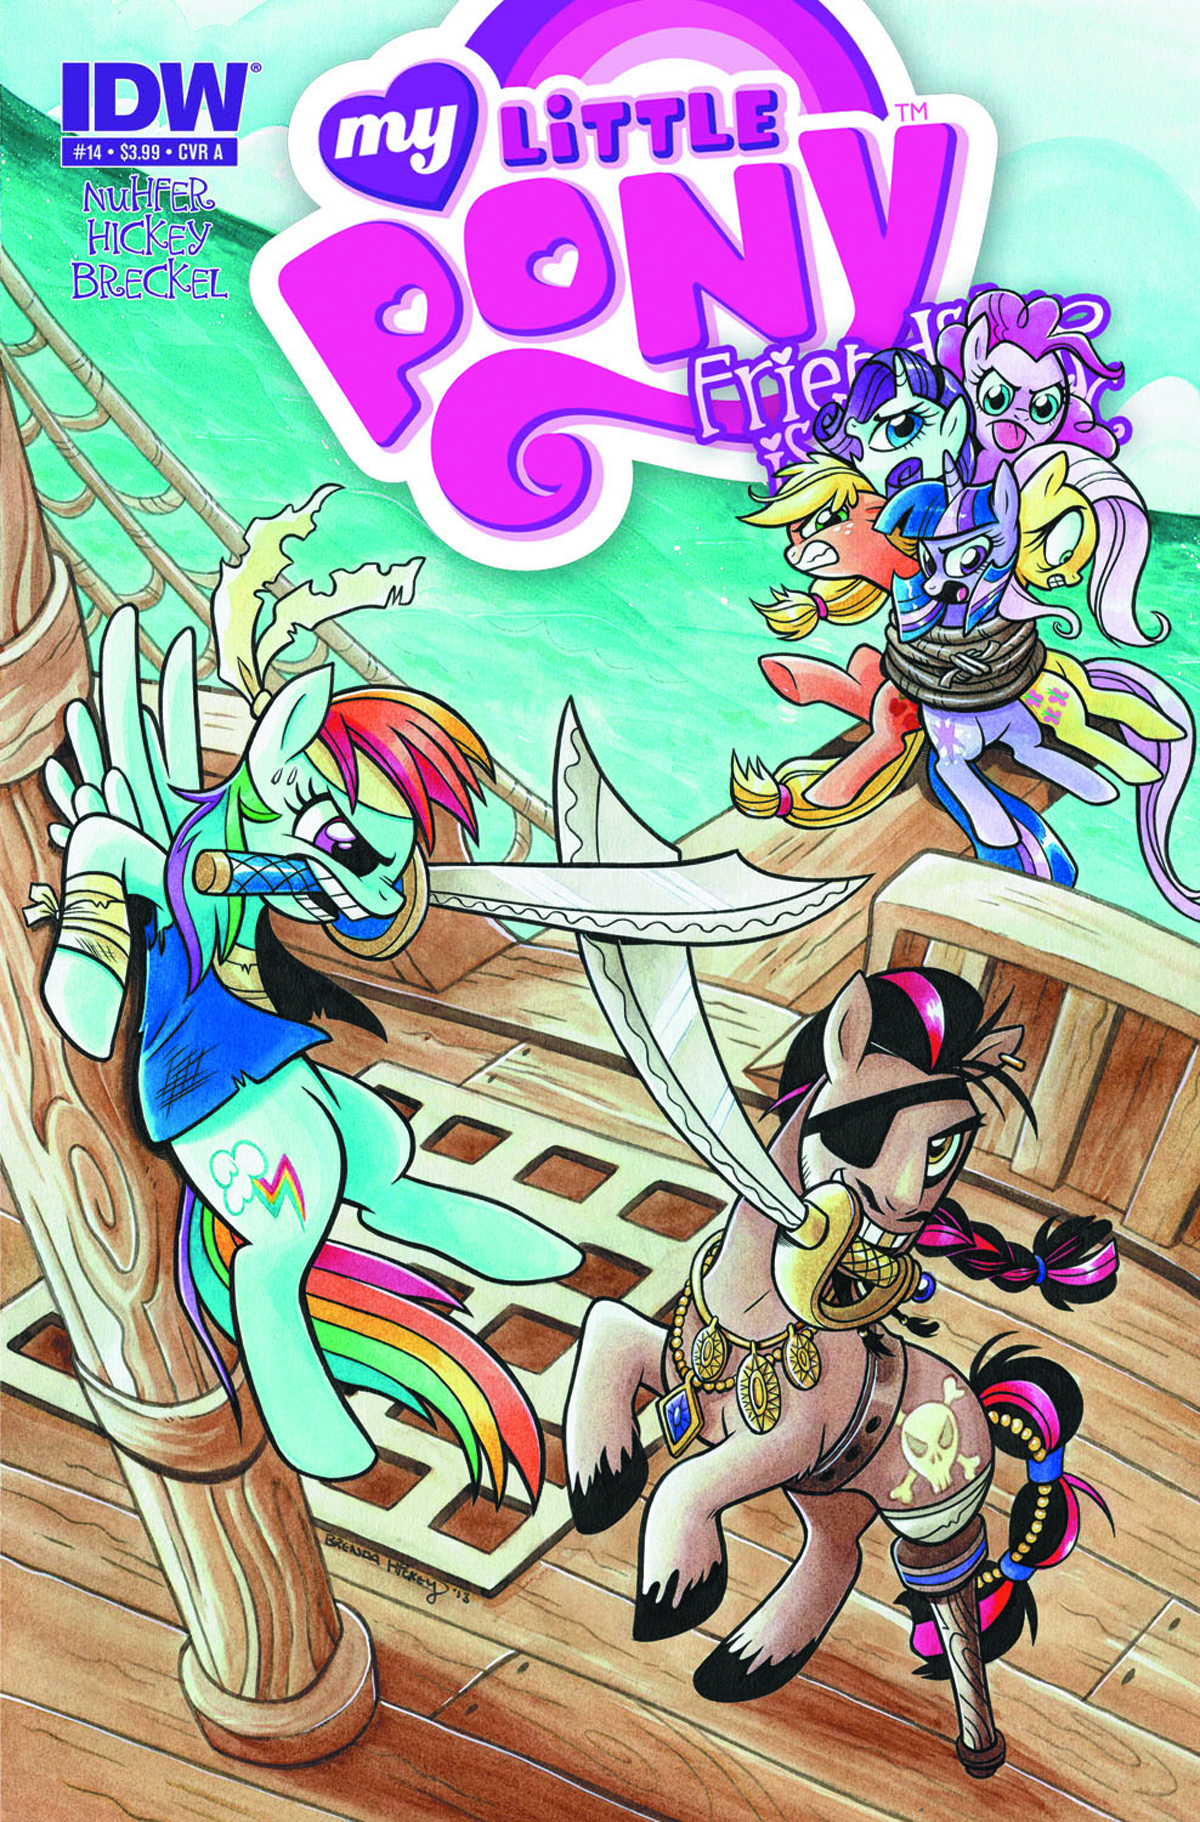 MY LITTLE PONY FRIENDSHIP IS MAGIC #14